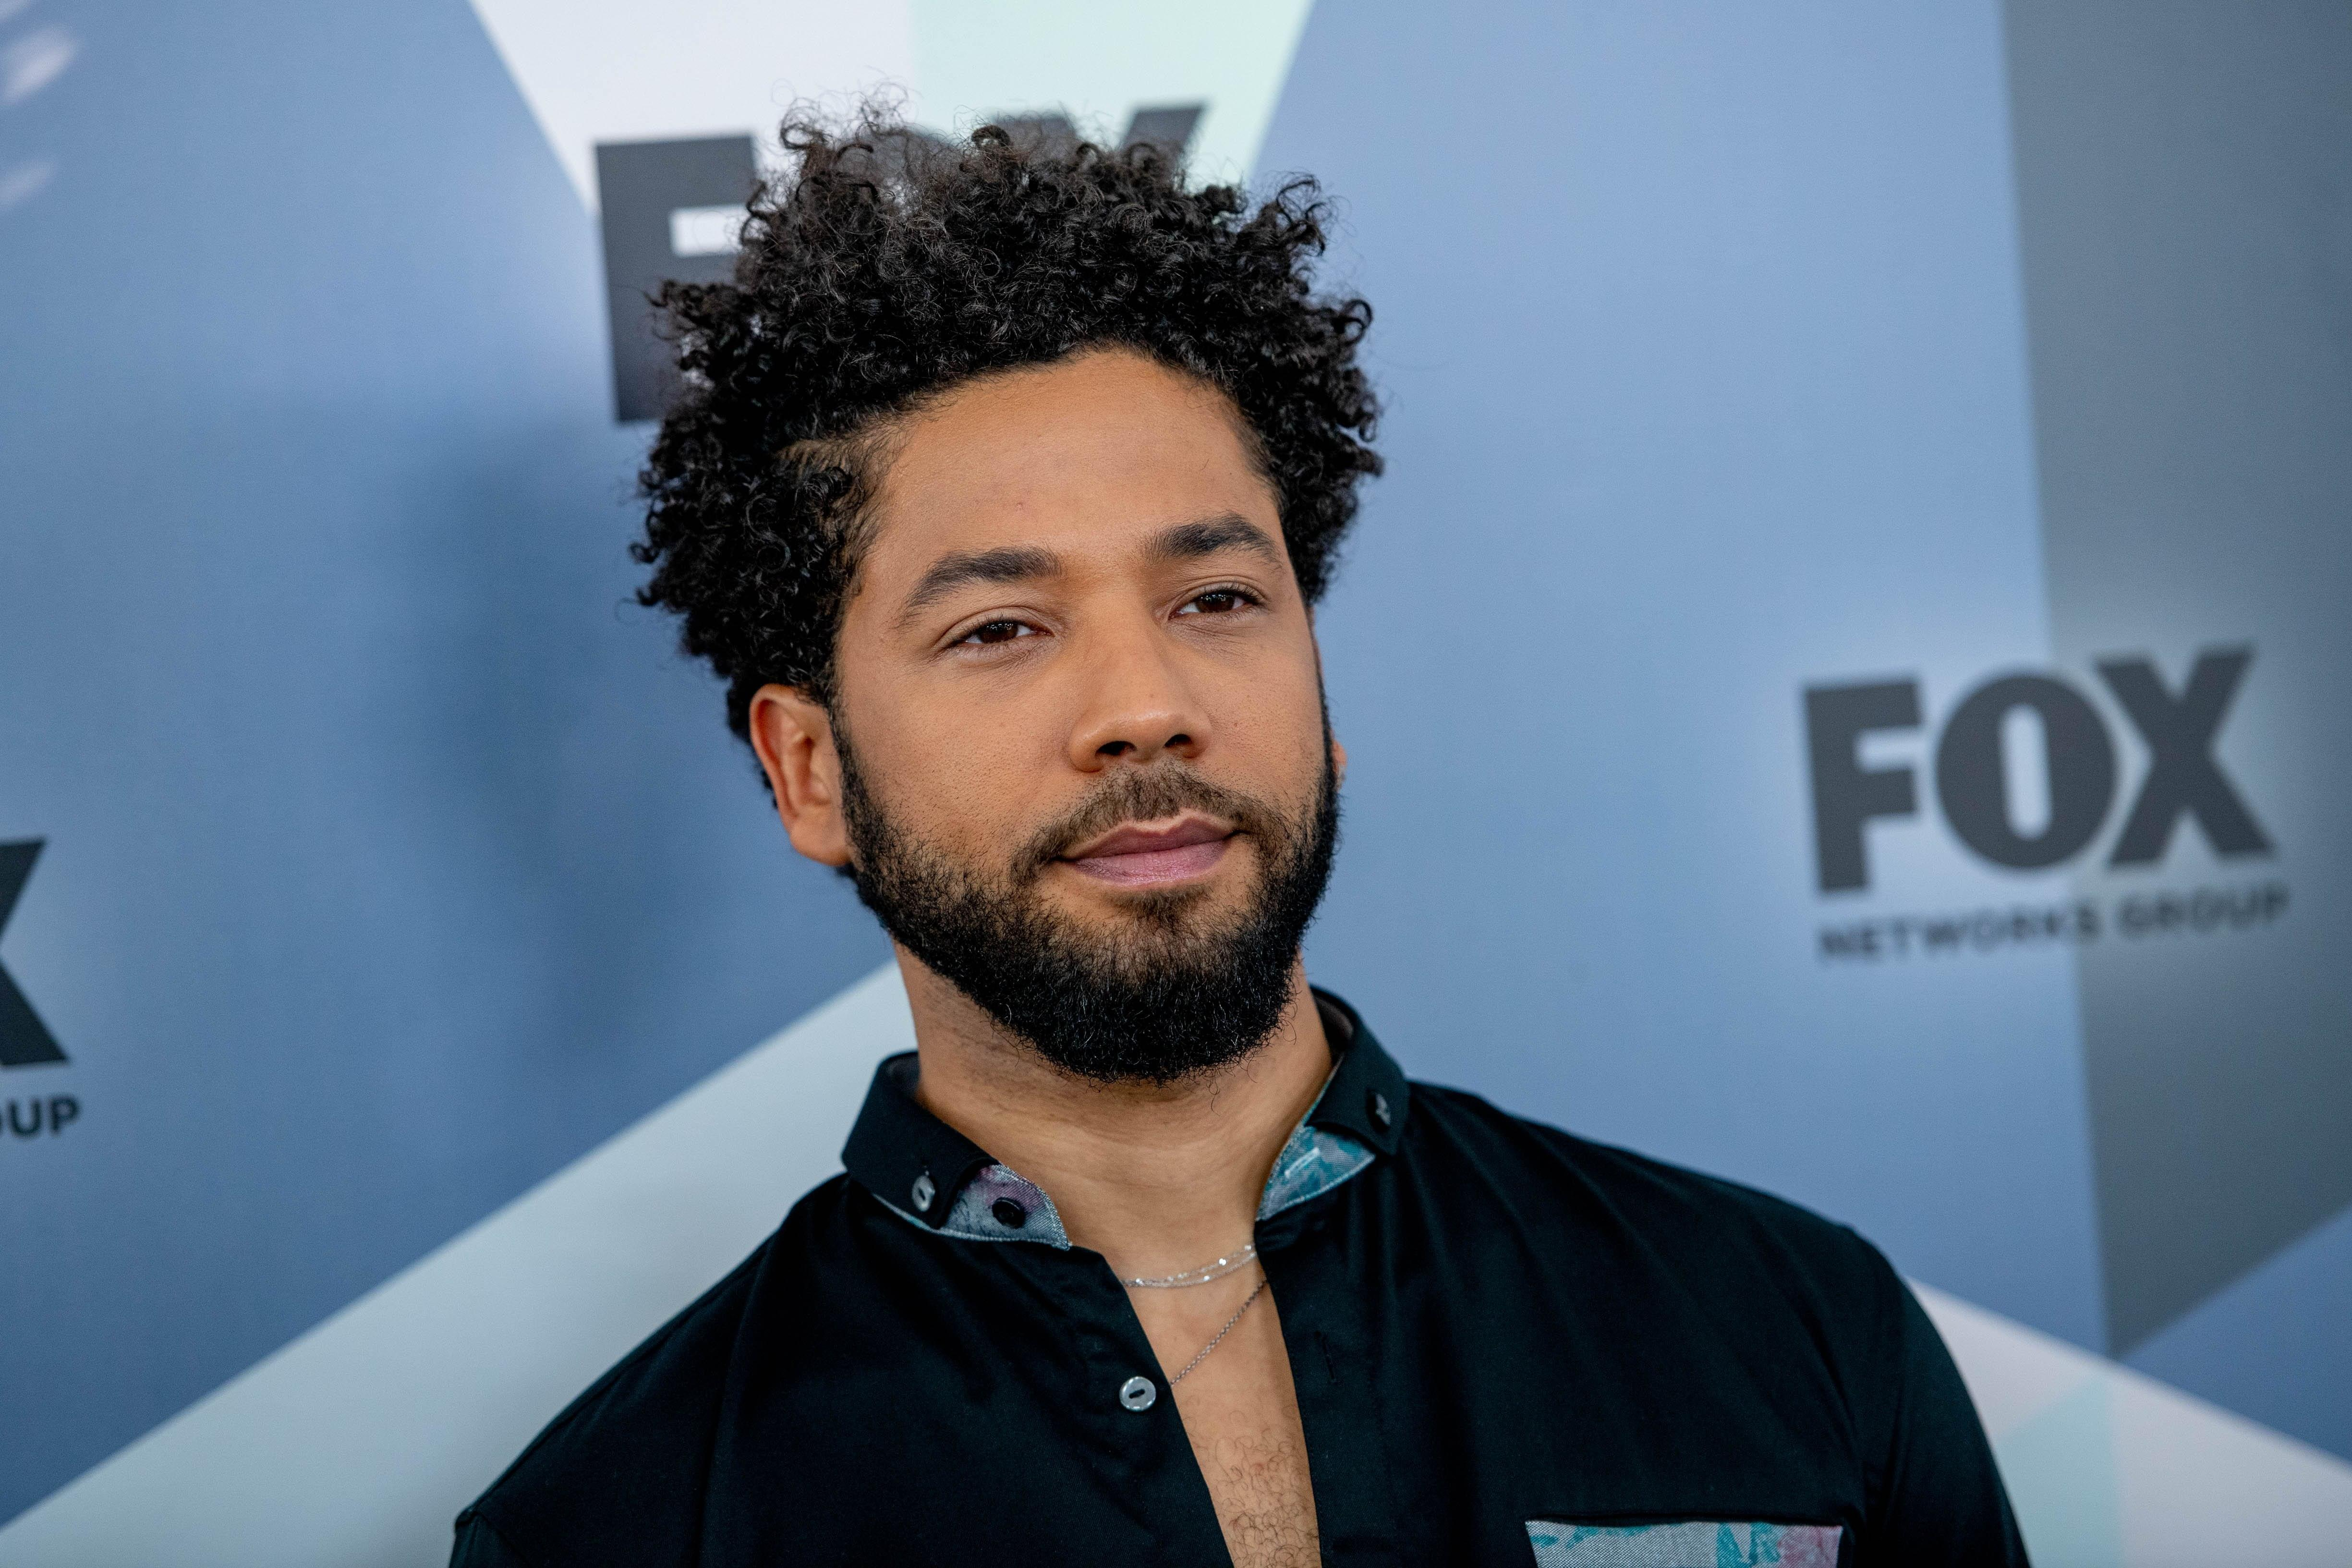 Empire Star Jussie Smollett Hospitalized In Chicago After Premeditated Hate Attack